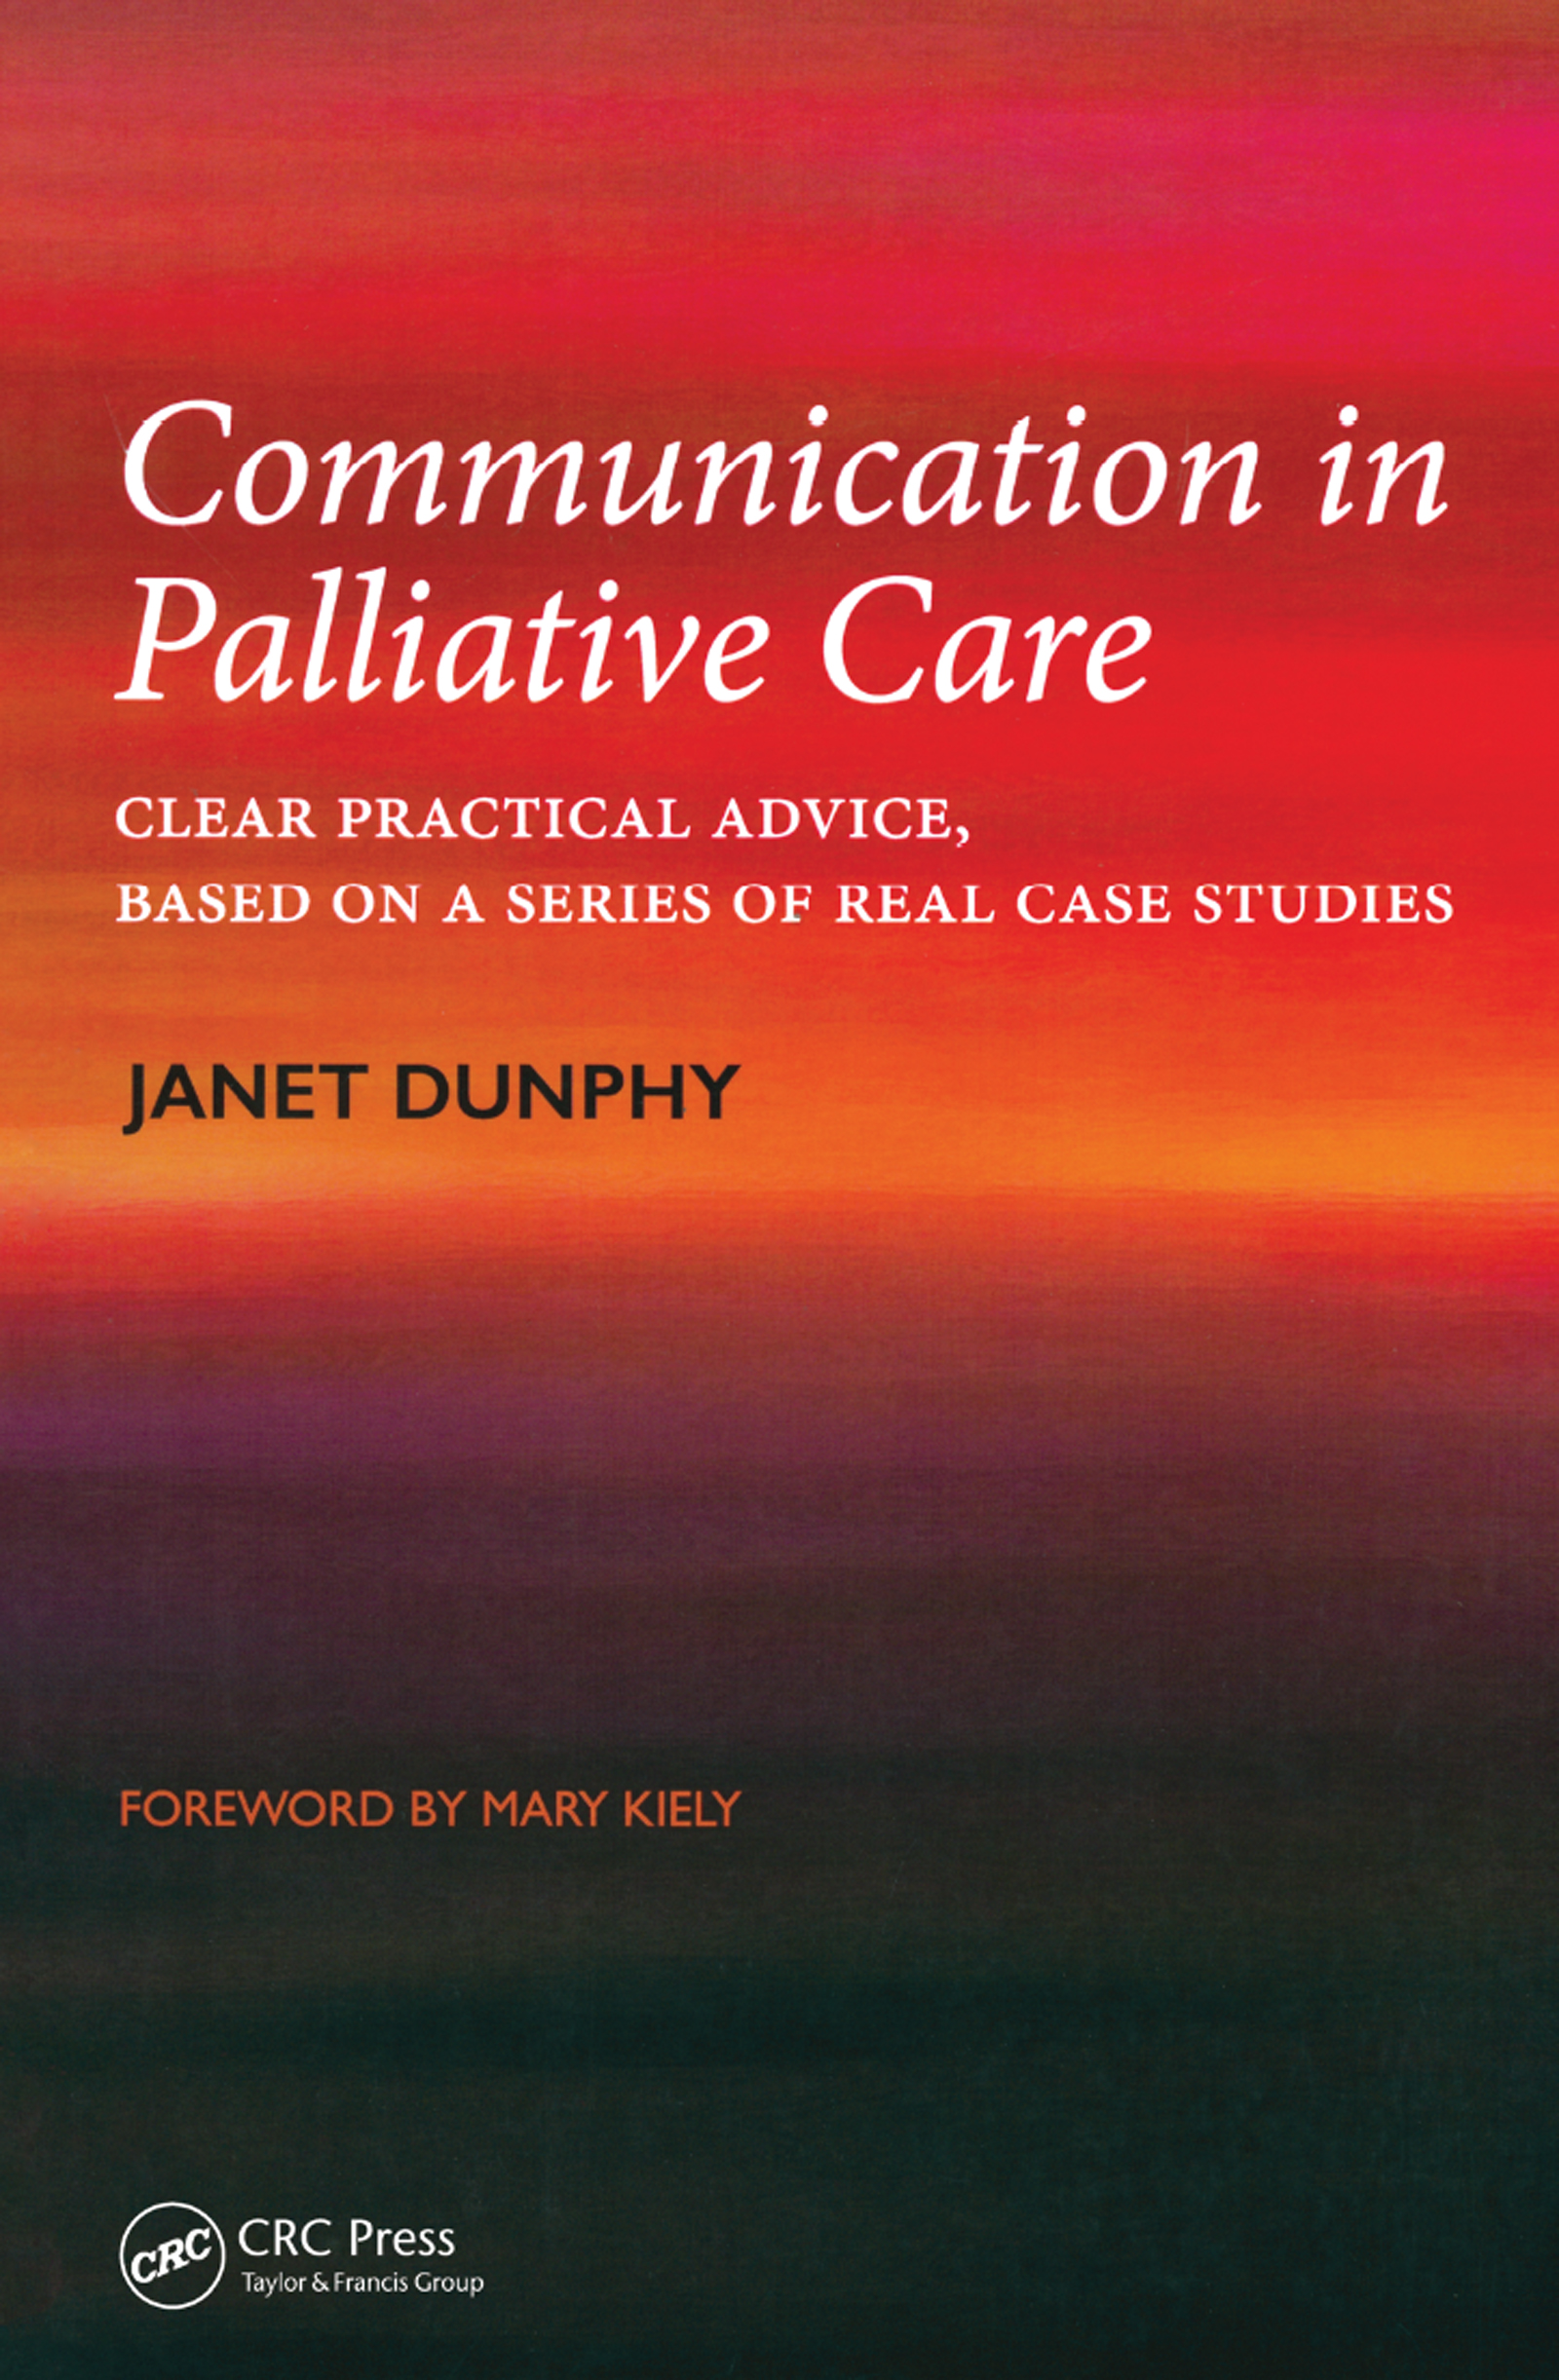 Communication in Palliative Care: Clear Practical Advice, Based on a Series of Real Case Studies, 1st Edition (Paperback) book cover